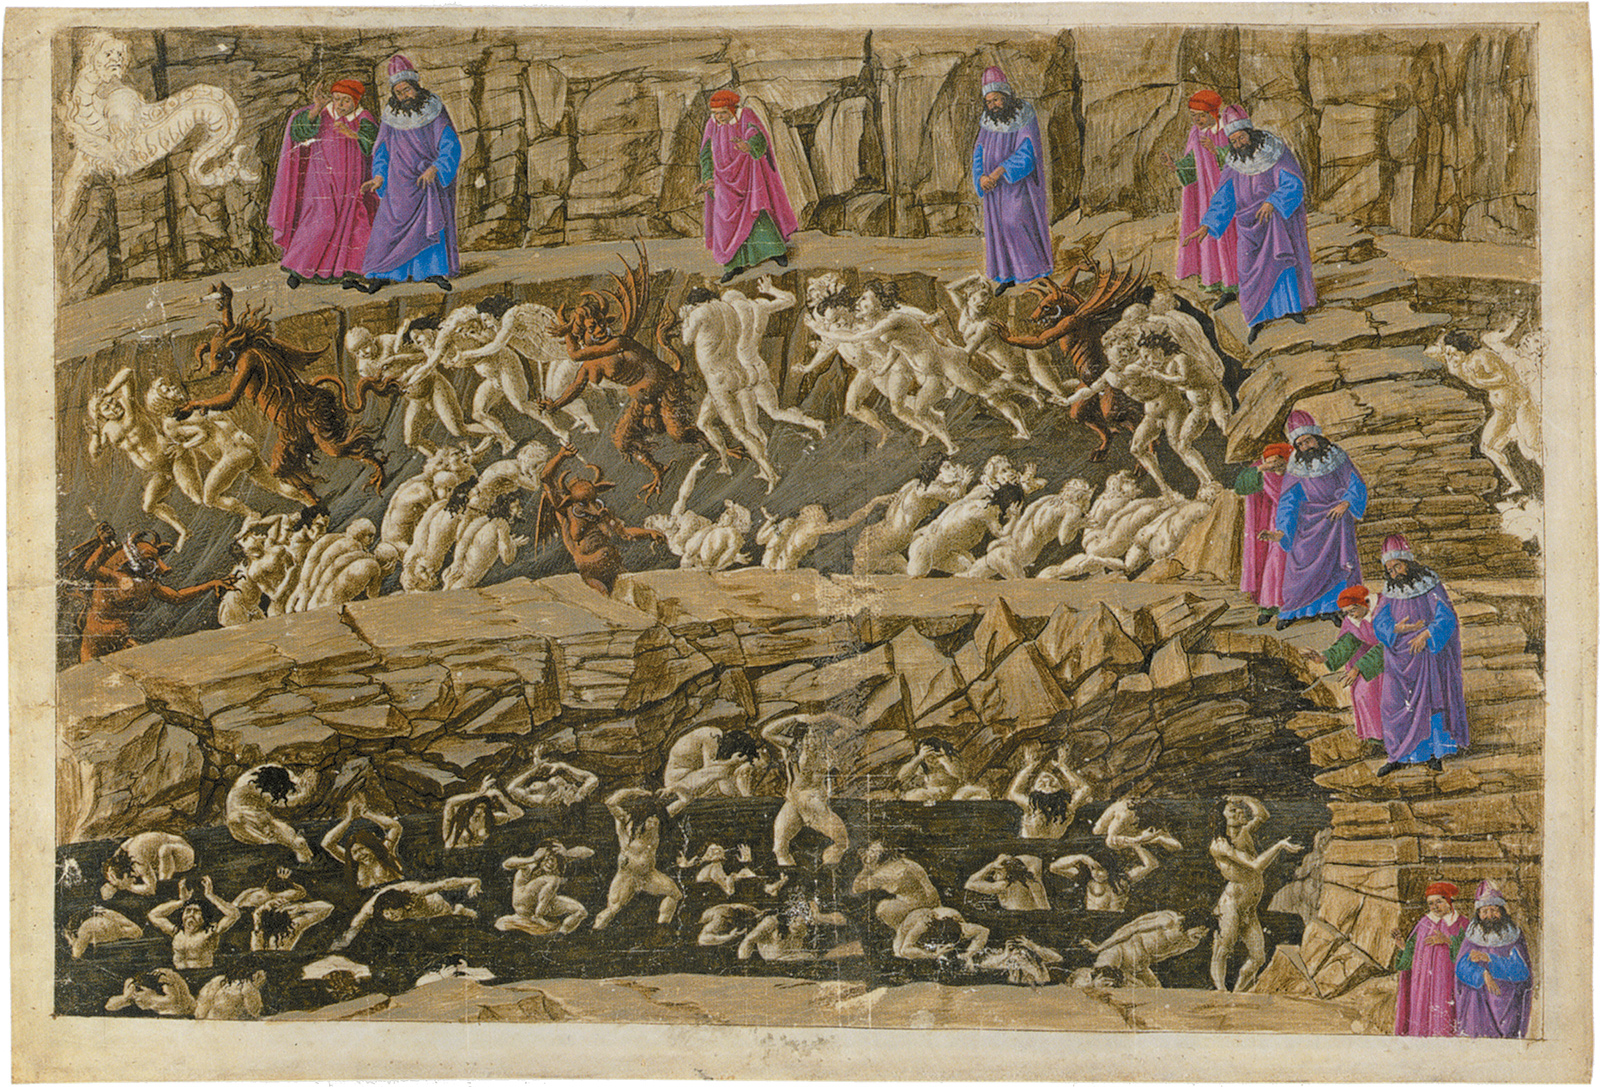 'Inferno XVIII'; Virgil and Dante in the eighth circle of Hell, showing the punishment of panderers, seducers, flatterers, and whores; illustration by Sandro Botticelli, circa 1490